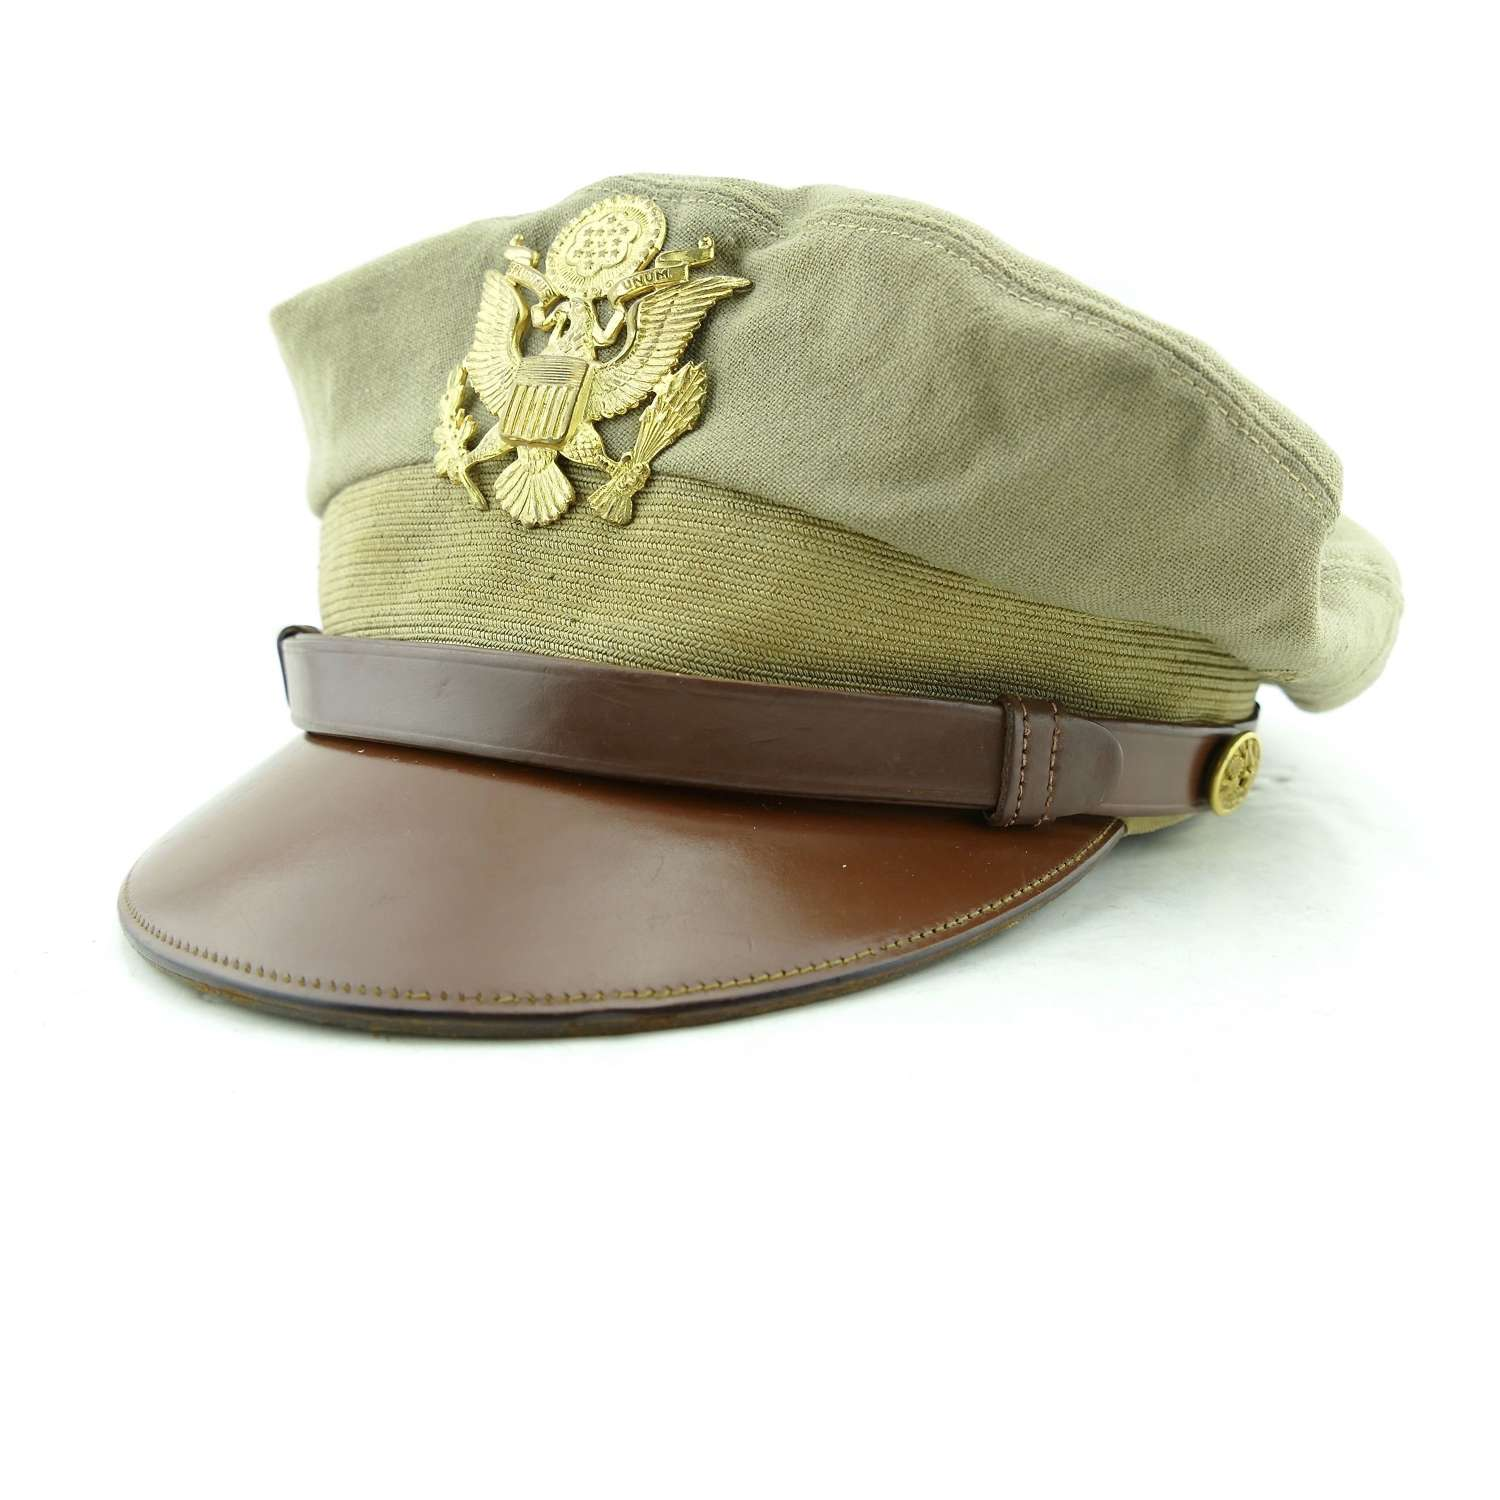 USAAF 'tropical' visor cap - named